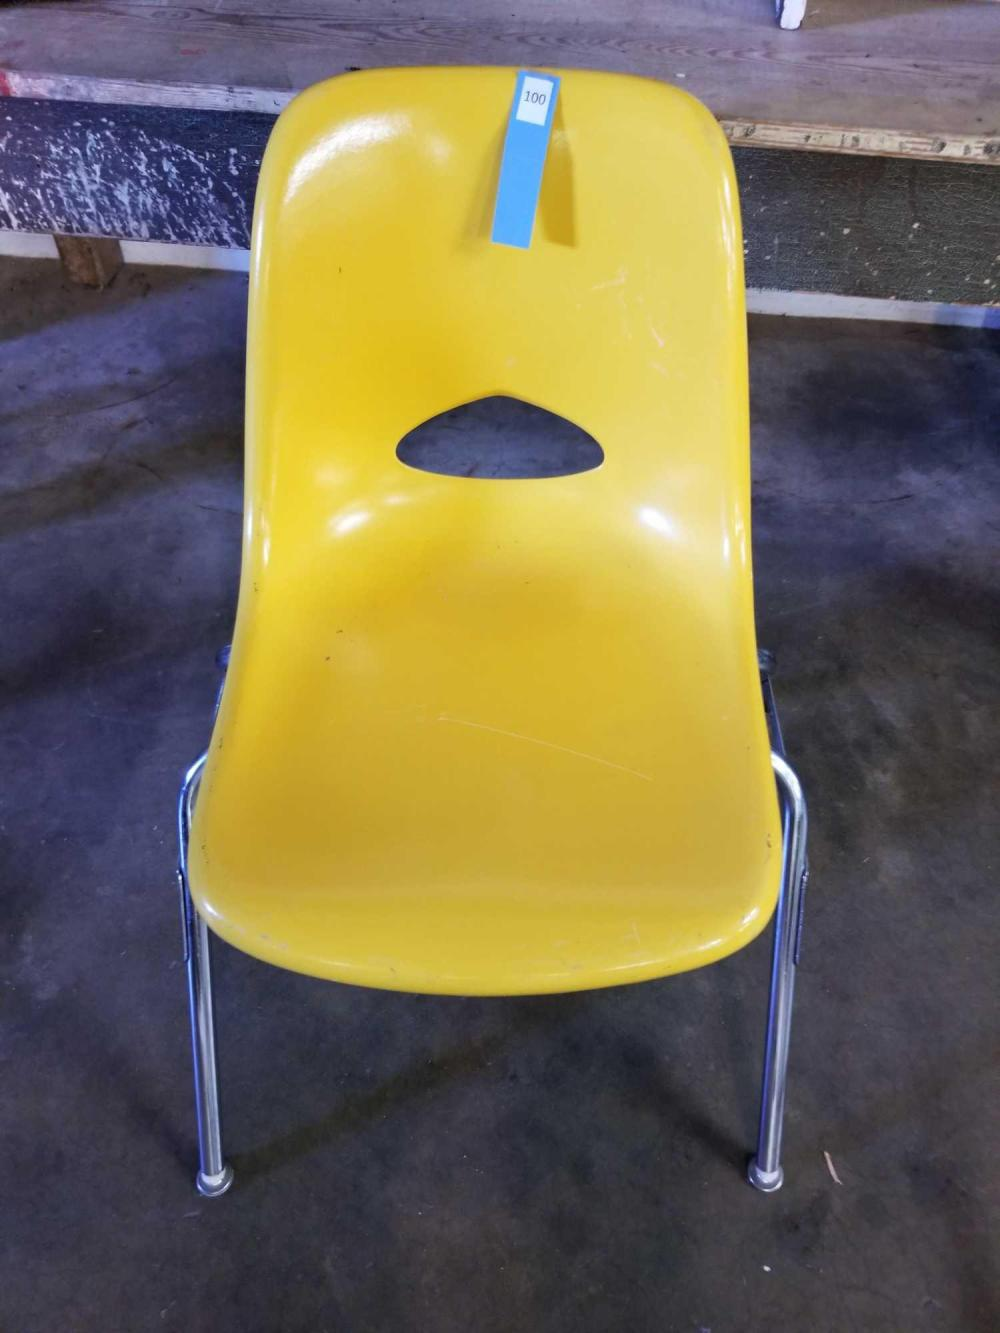 CHROME & MOLDED PLASTIC MID-CENTURY STYLE CHILD'S CHAIR